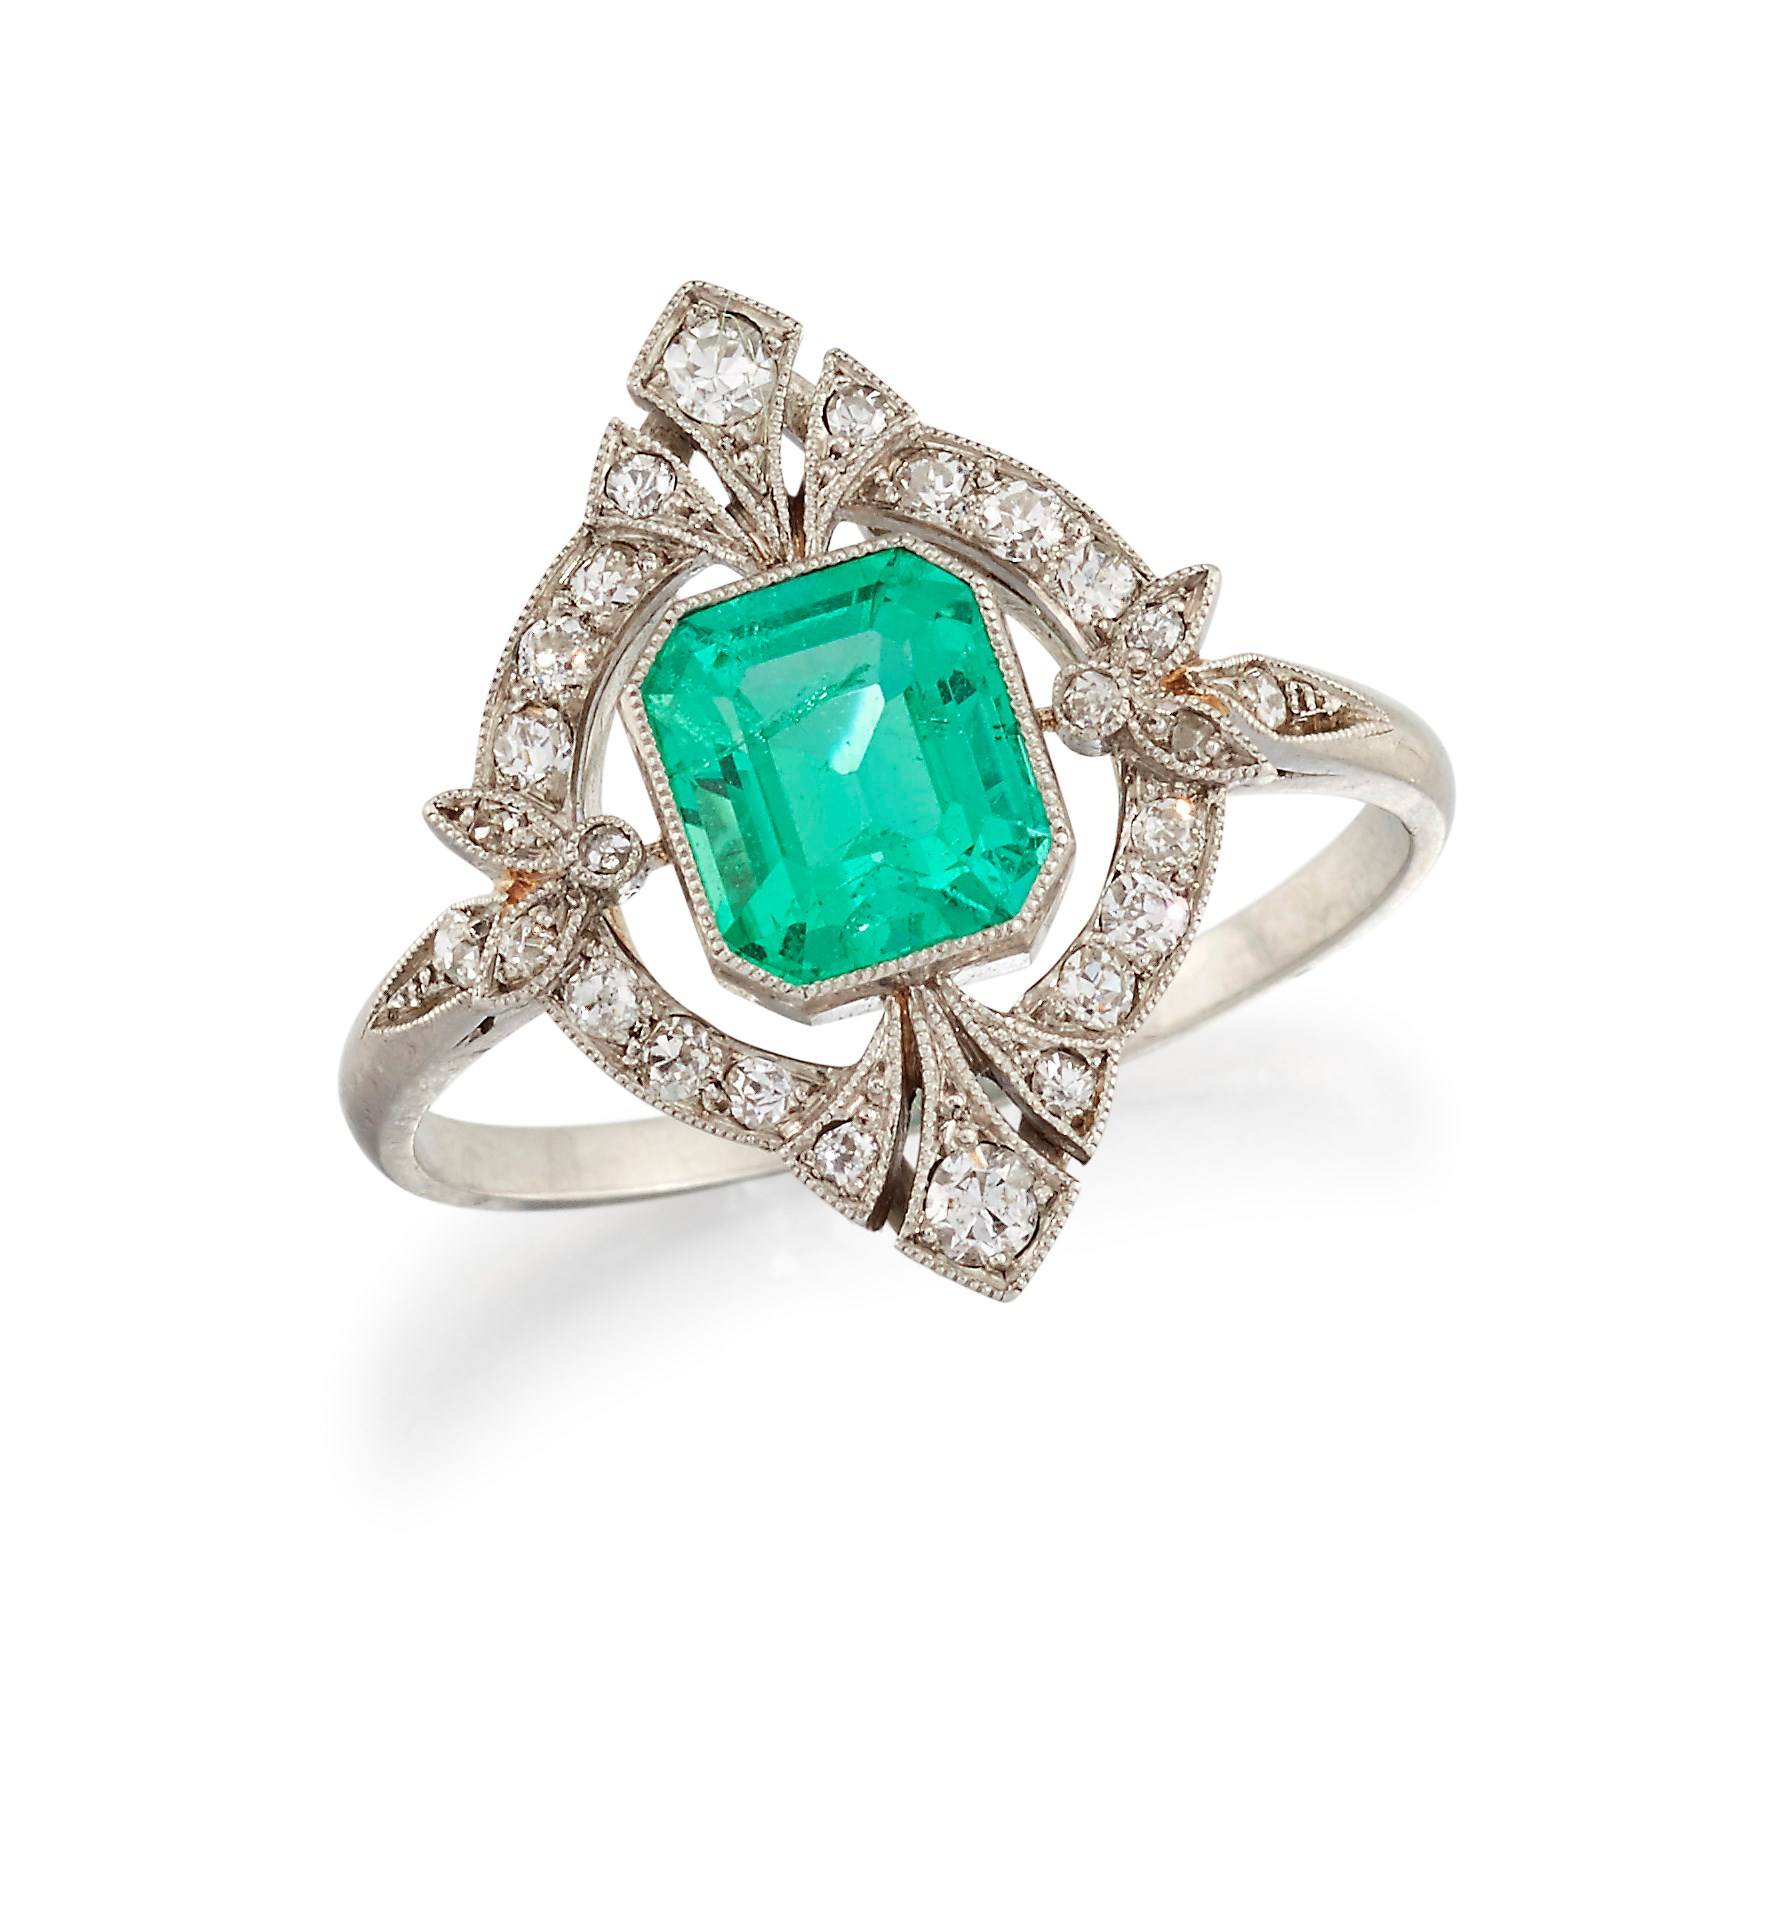 French Belle Epoque emerald ring